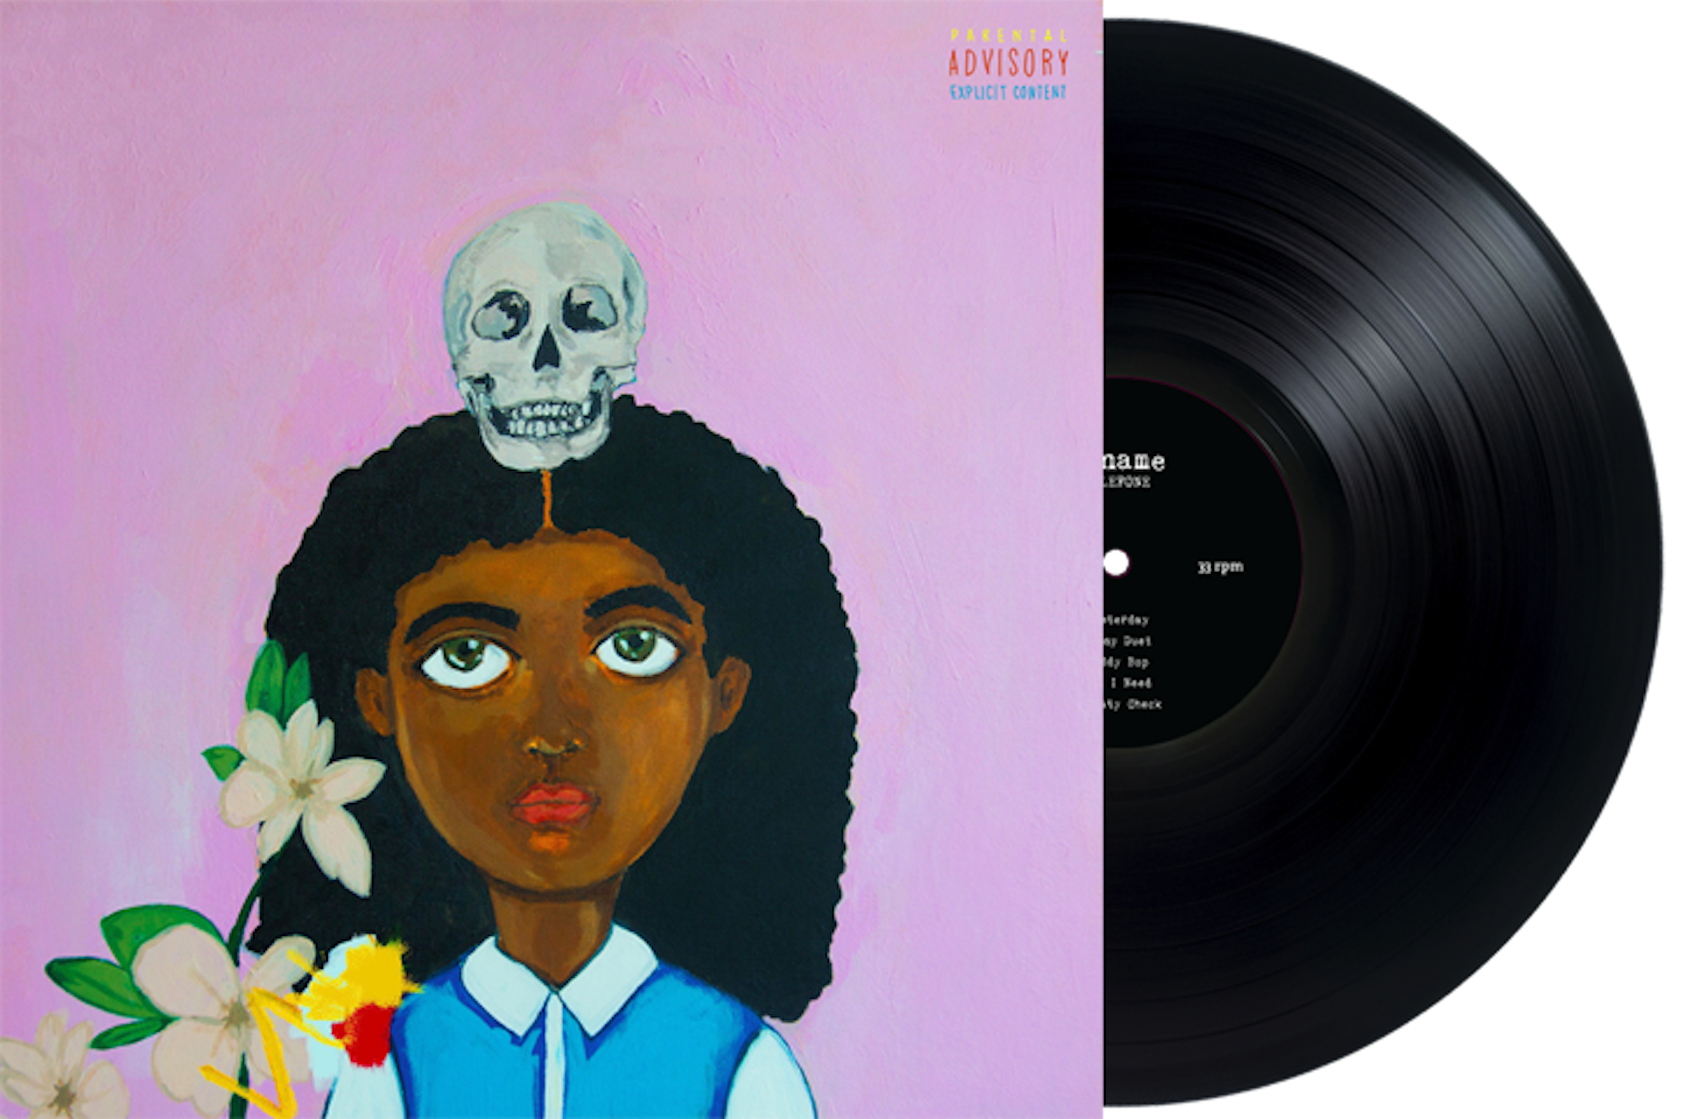 The 10 Most Valuable Vinyl Me Please Releases According